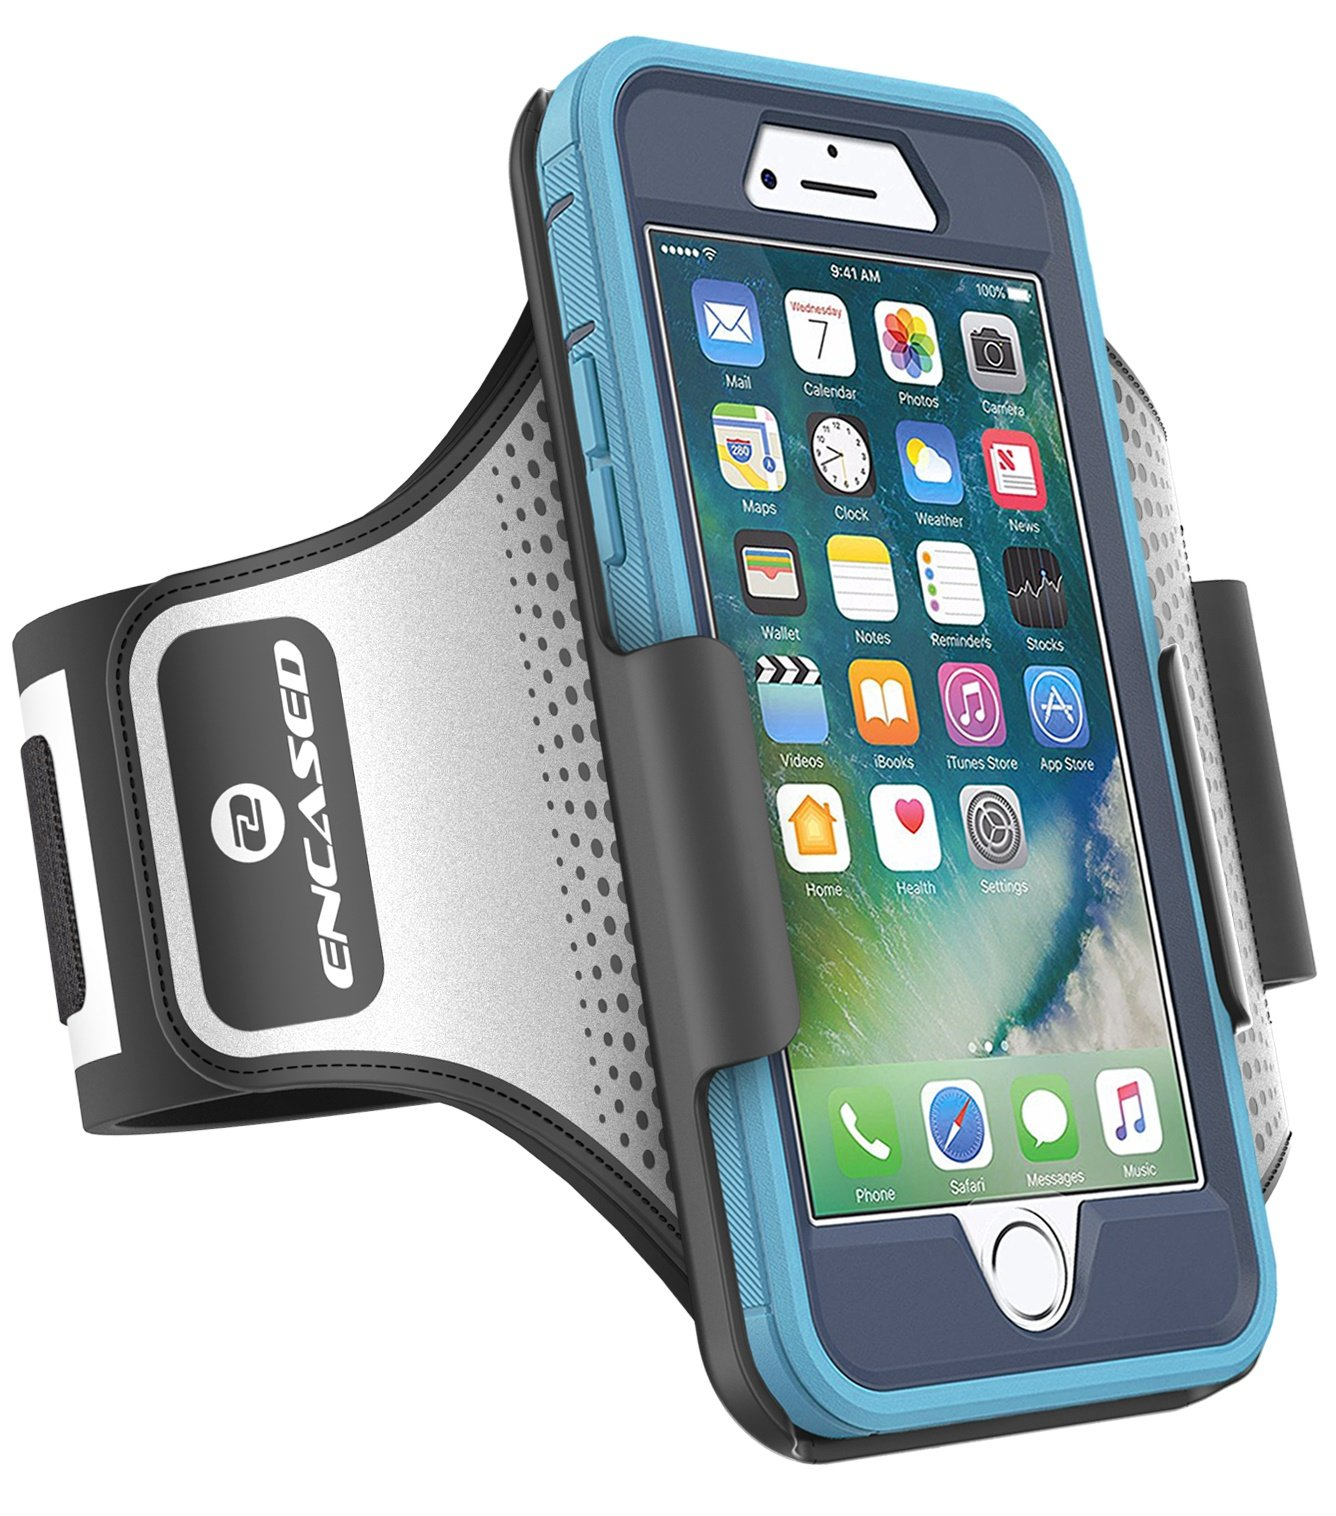 newest collection 8b1e5 94579 iPhone 6 Plus Otterbox Defender Armband